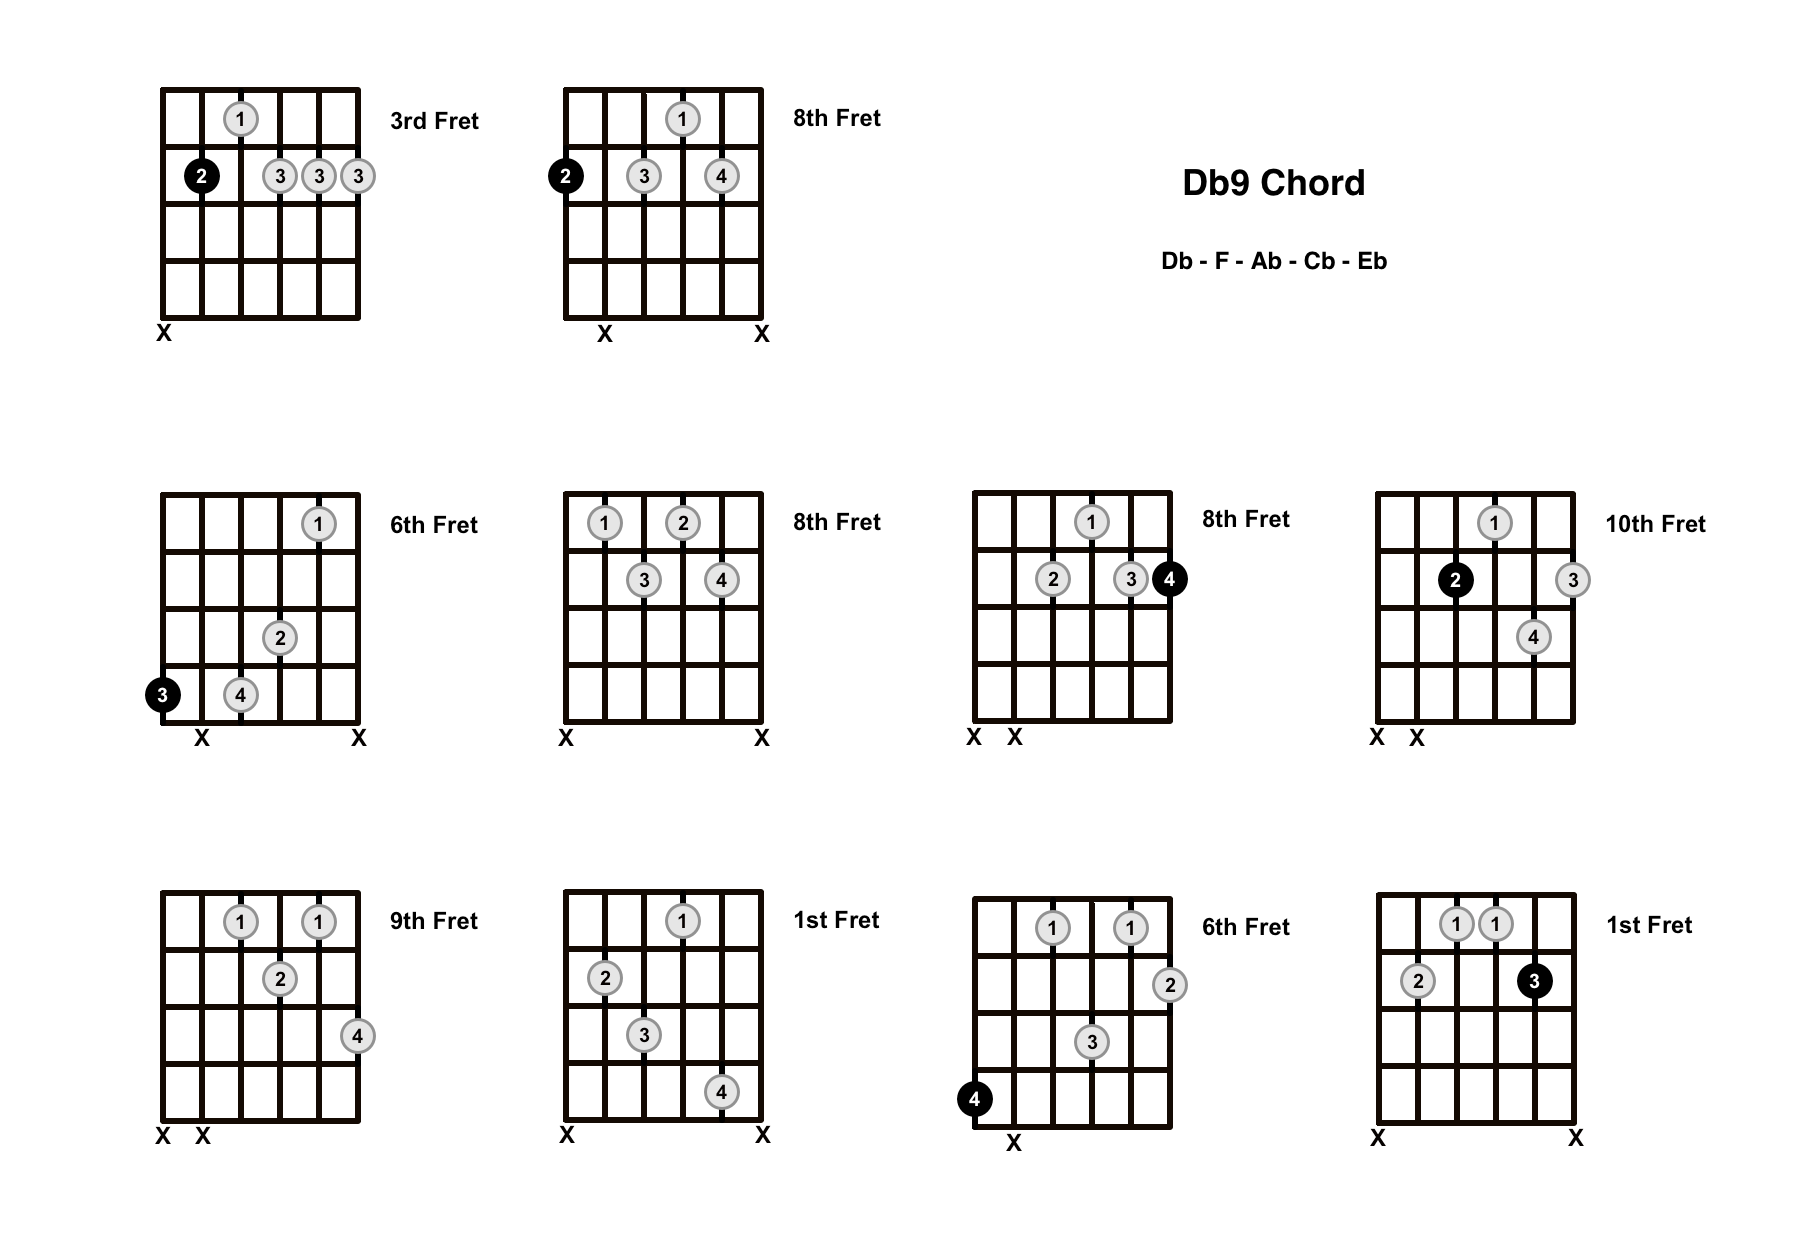 Db9 Chord On The Guitar (D Flat 9) – Diagrams, Finger Positions and Theory